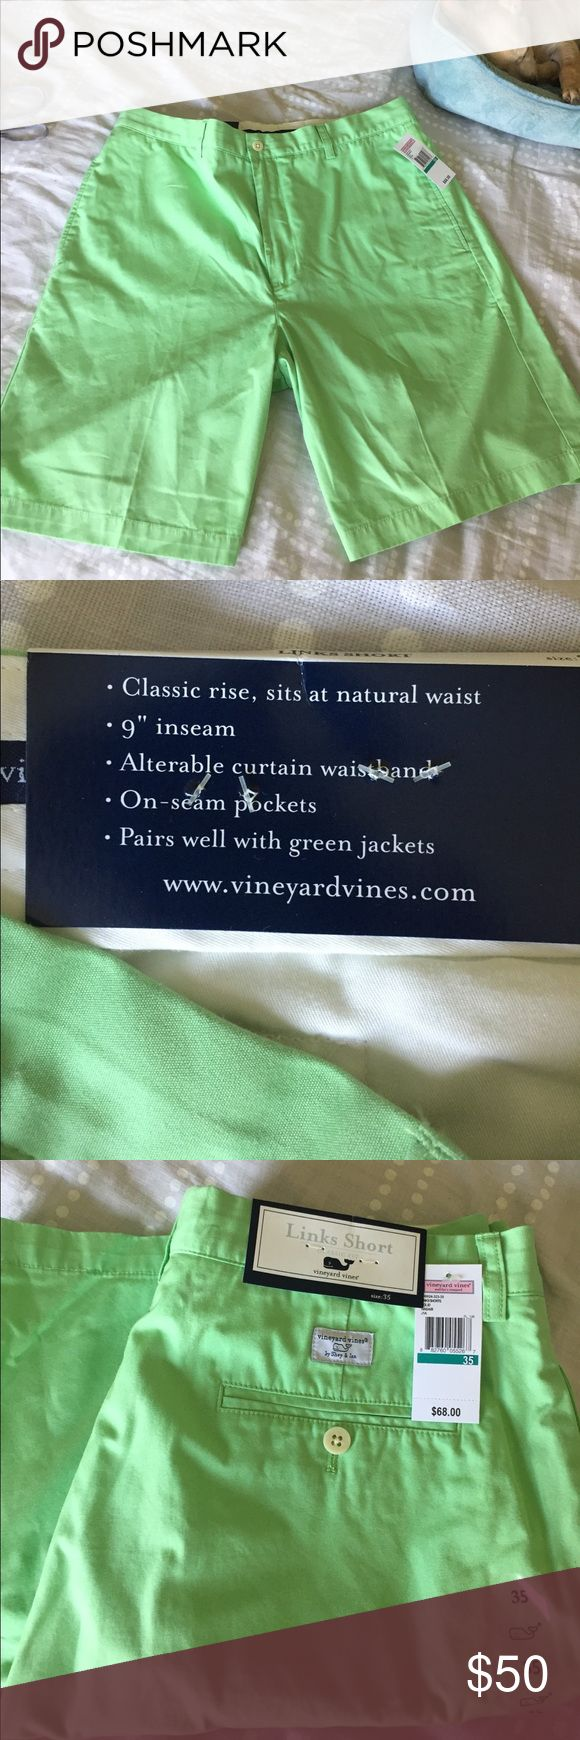 """Vineyard vines shorts Brand new with tags.  Green link shorts, classic rise, natural waist, 9"""" inseam, alterable curtain waistband. Open to offers and trades. Sleeping puppy not included 😂 Vineyard Vines Shorts Flat Front"""